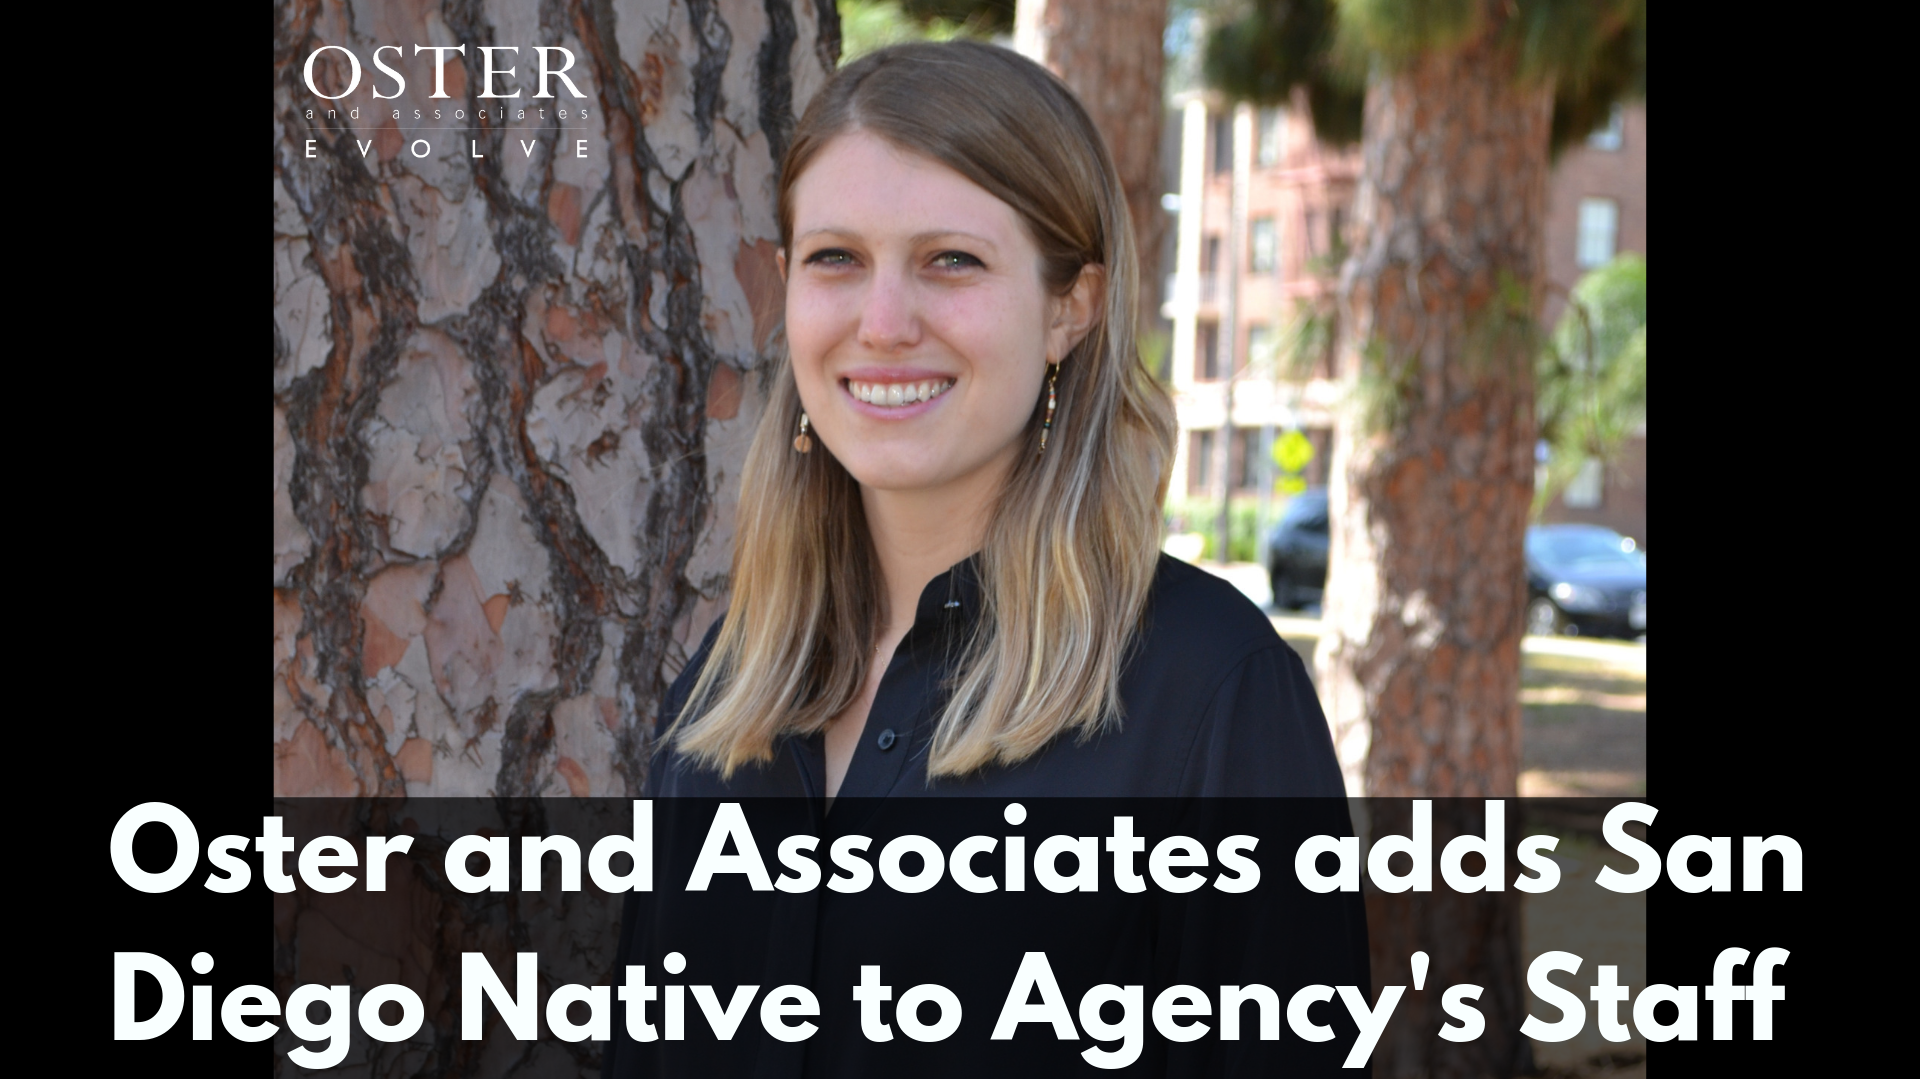 Oster and Associates Adds San Diego Native to Agency's Staff